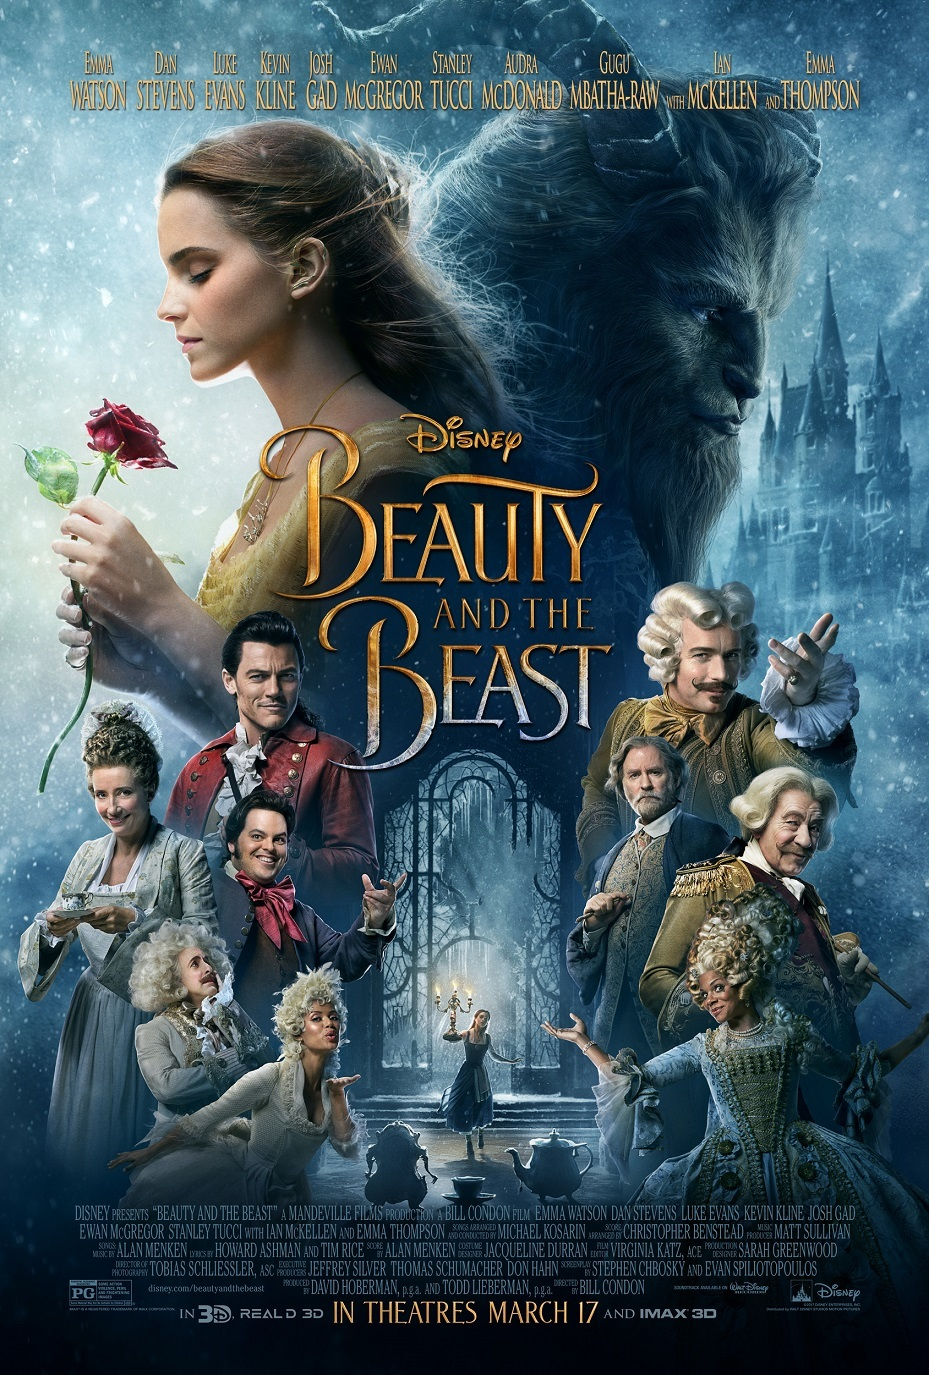 This is a graphic of Lively Beauty and the Beast Images